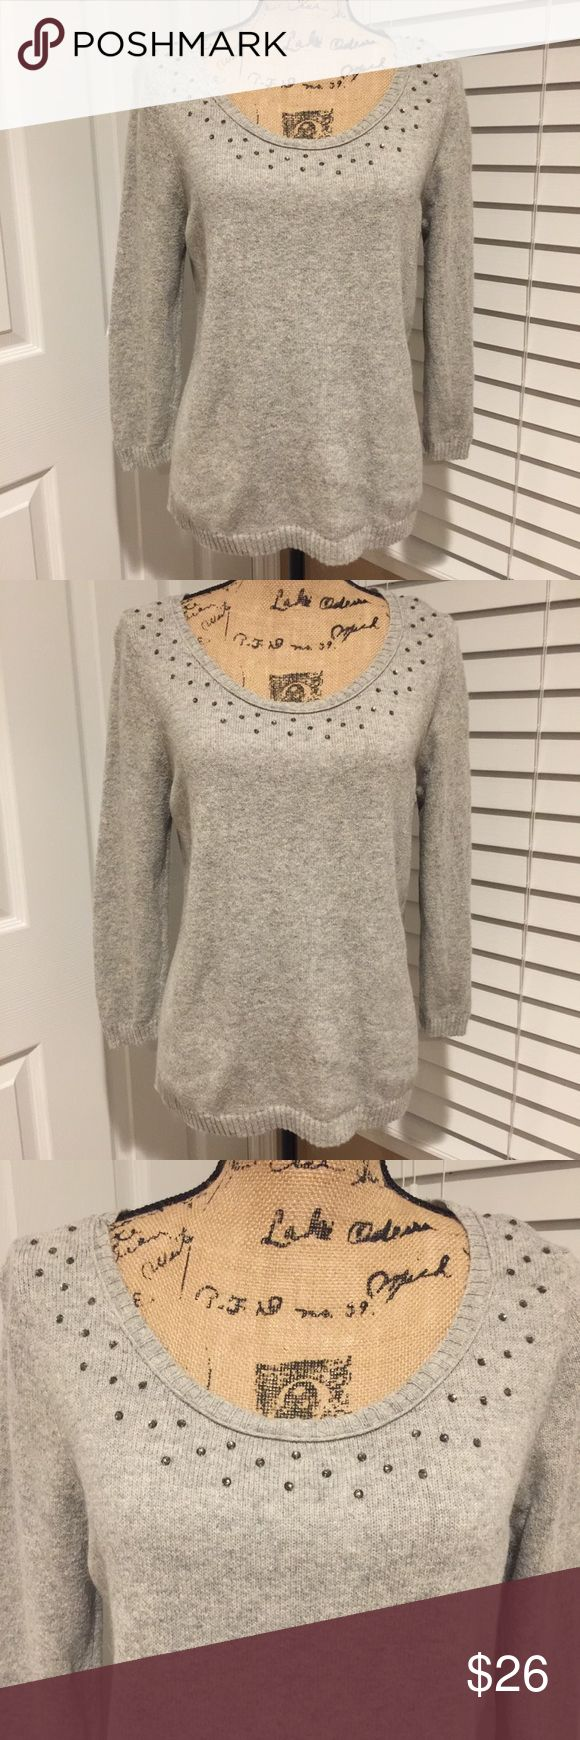 🌸💕 GUESS 💕🌸 Gorgeous Studded Sweater SZ L 🌸💕 GUESS 💕🌸 Gorgeous Studded Sweater SZ L High/Lower super soft and comfy sweater Preloved in great condition arm pit to arm pit 19 inches Guess Sweaters Crew & Scoop Necks